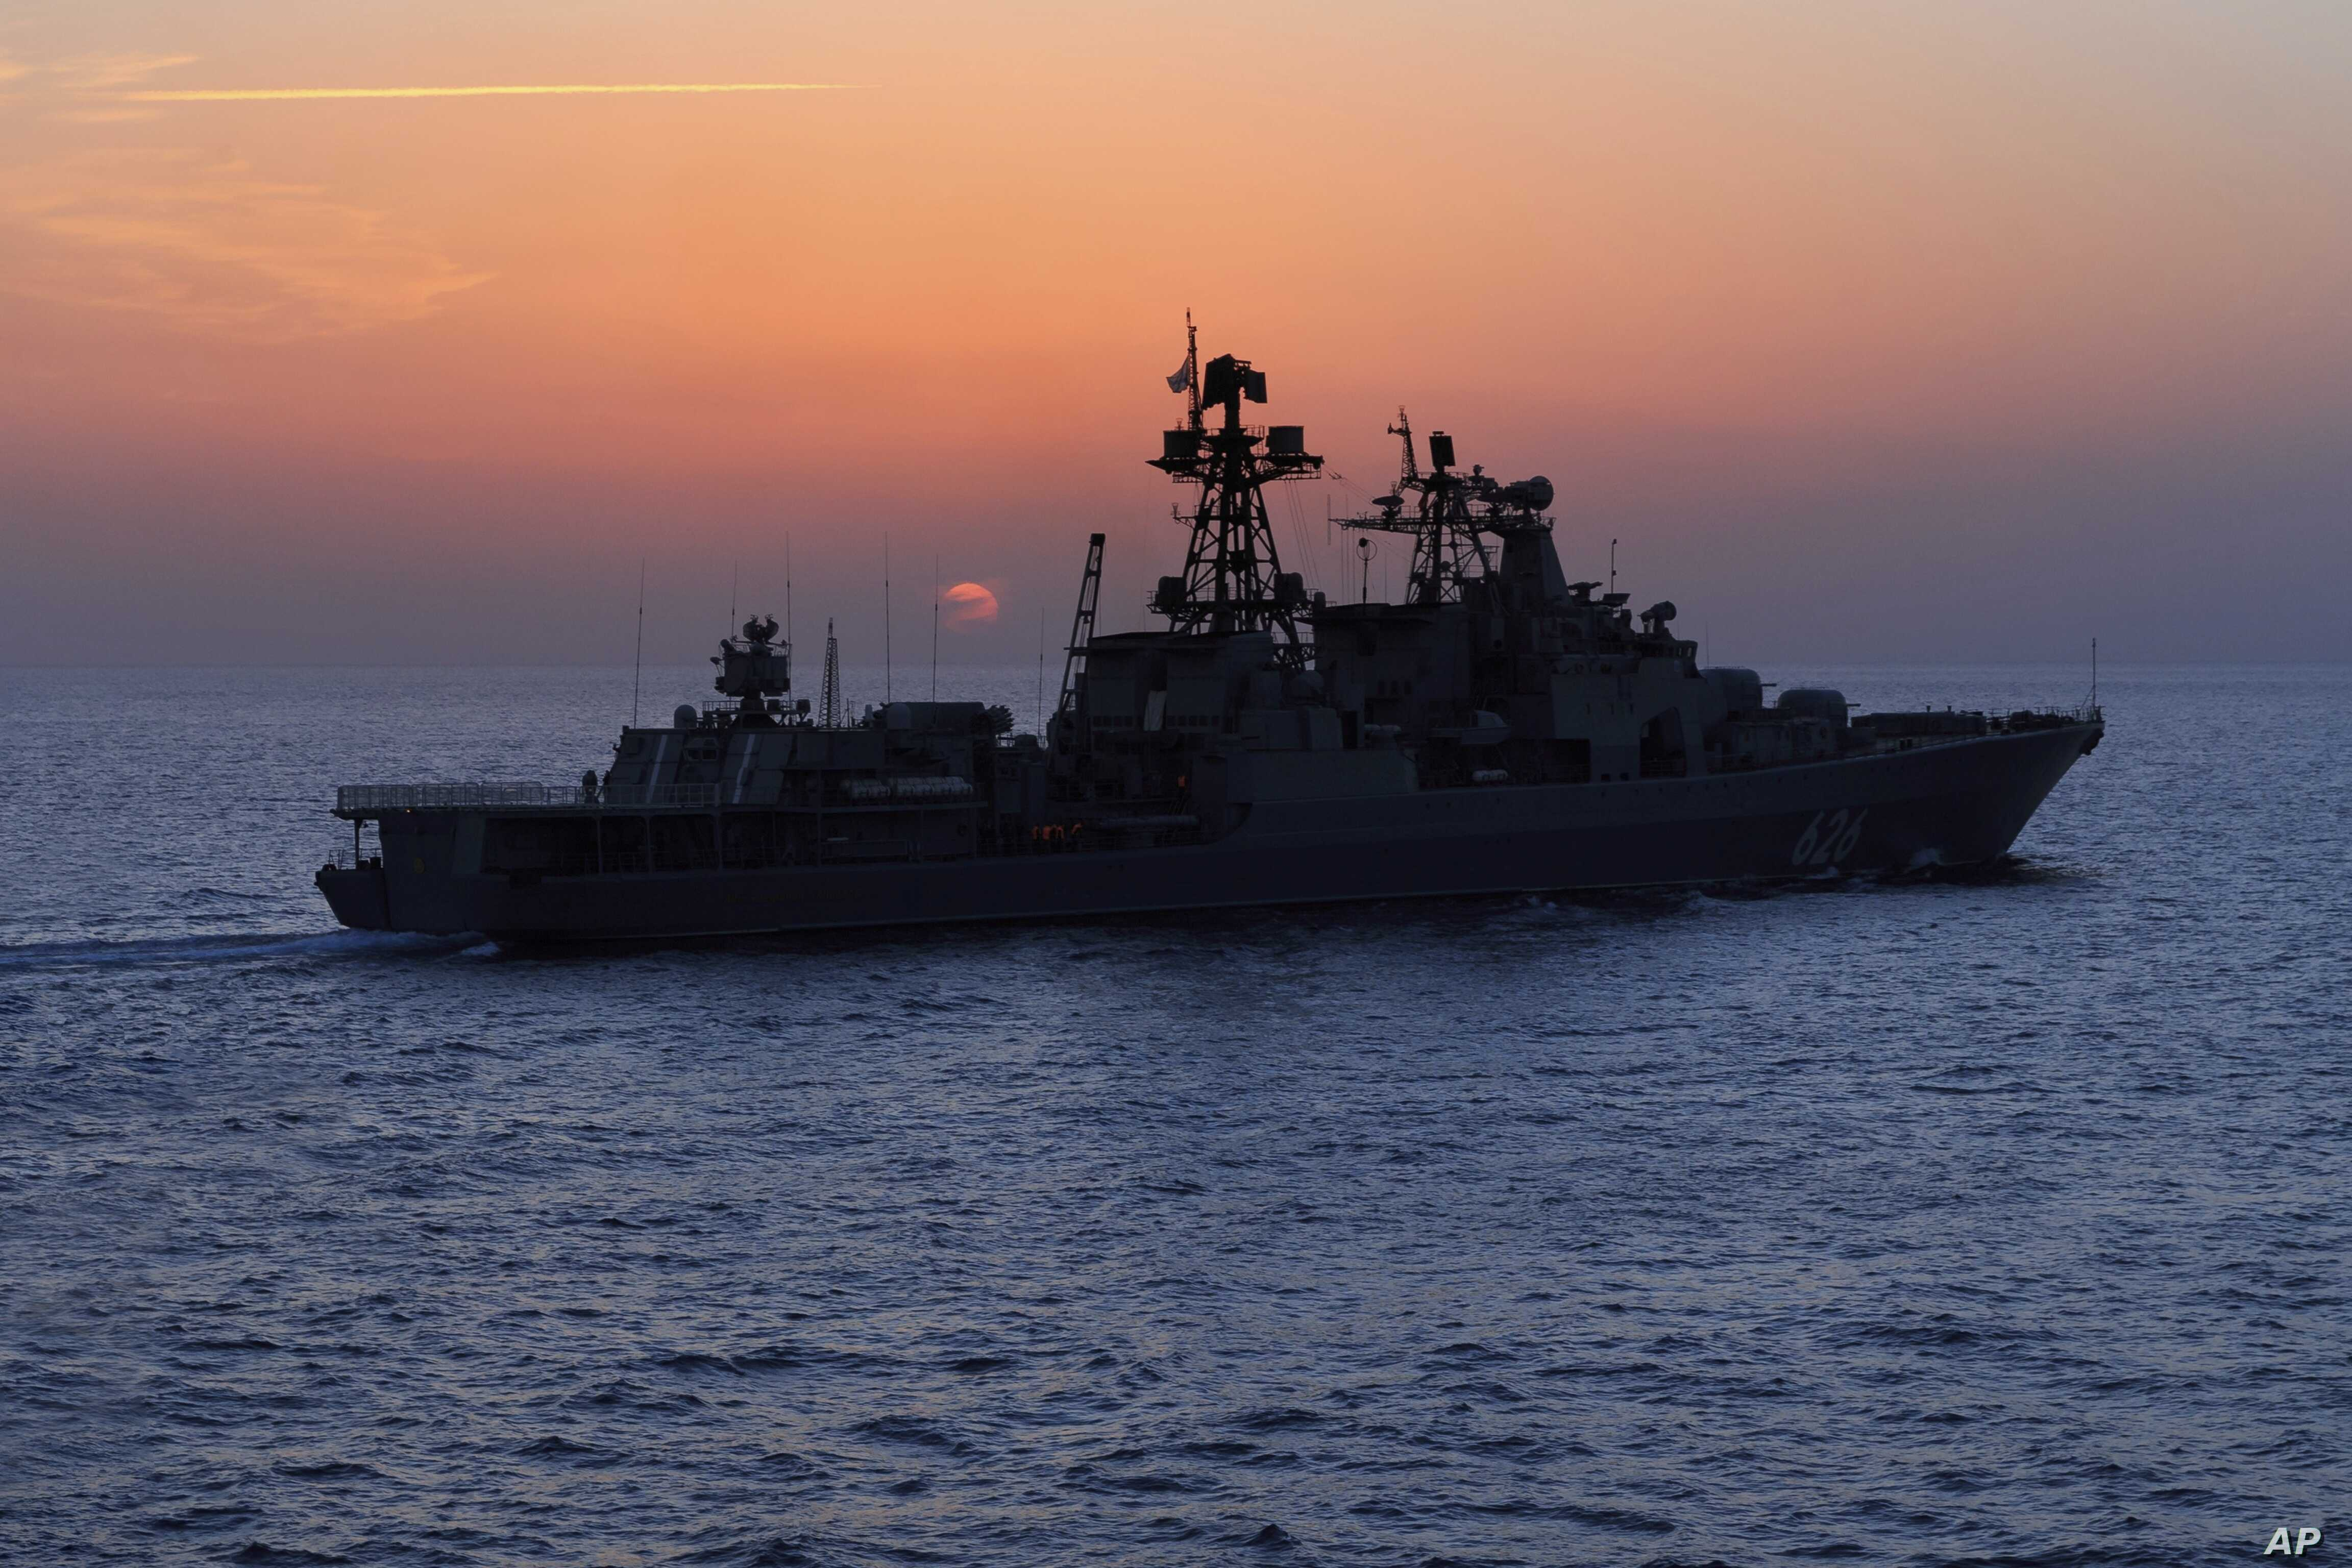 FILE - The Russian navy destroyer Vice Admiral Kulakov is seen on patrol in the eastern Mediterranean, Jan. 21, 2016. The Russian Defense Ministry says two Russian navy destroyers, the Kulakov and the Severomorsk, drove away a Dutch submarine in the